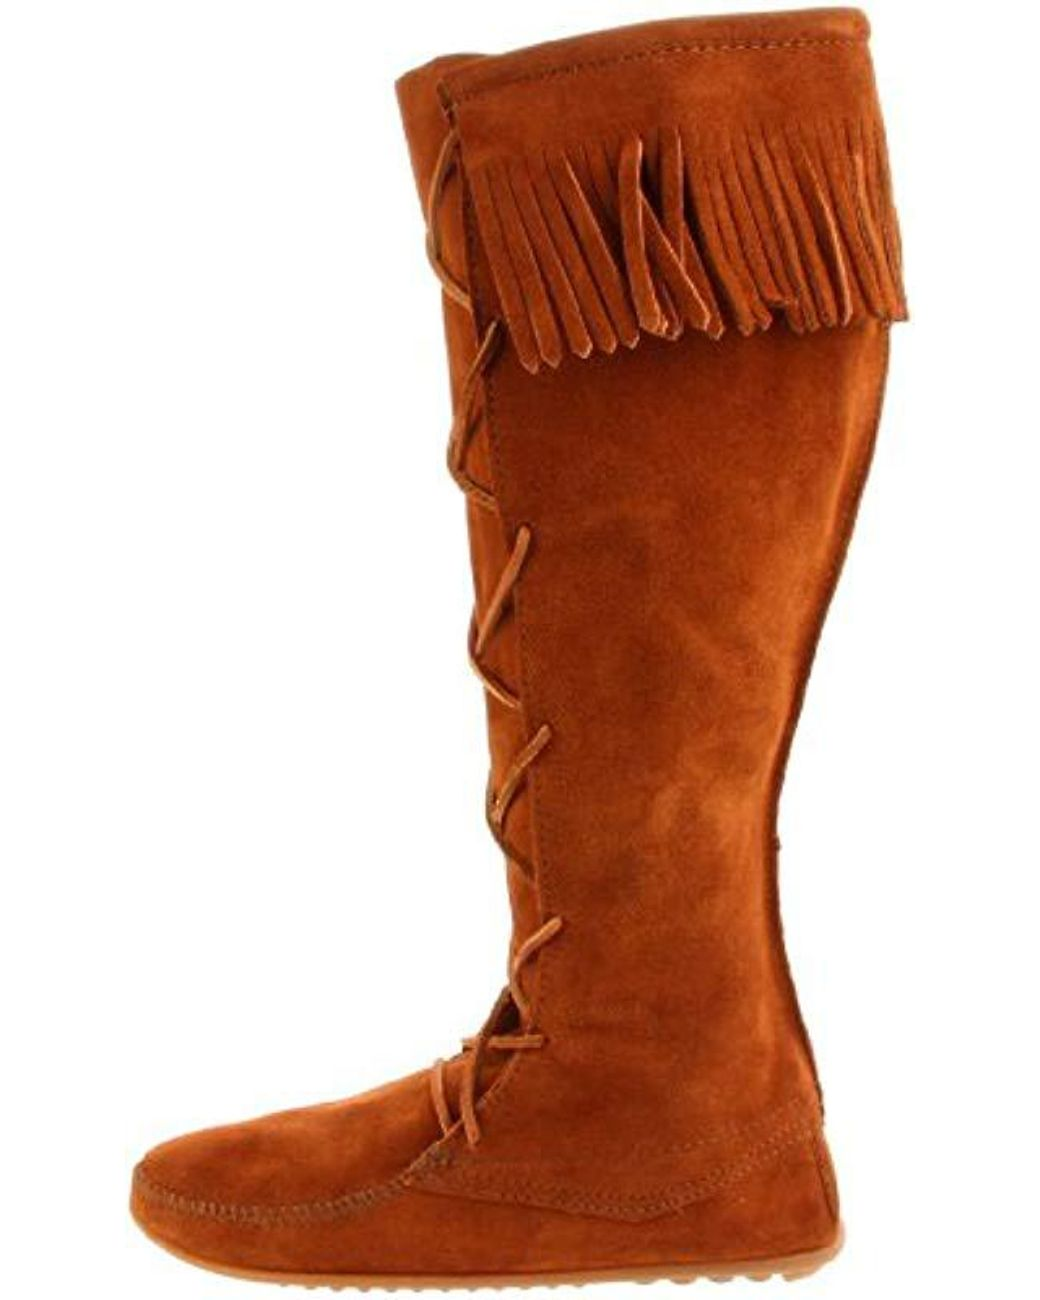 4634af4ec Minnetonka 1429 Front Lace Knee-high Boot in Brown - Save 19% - Lyst